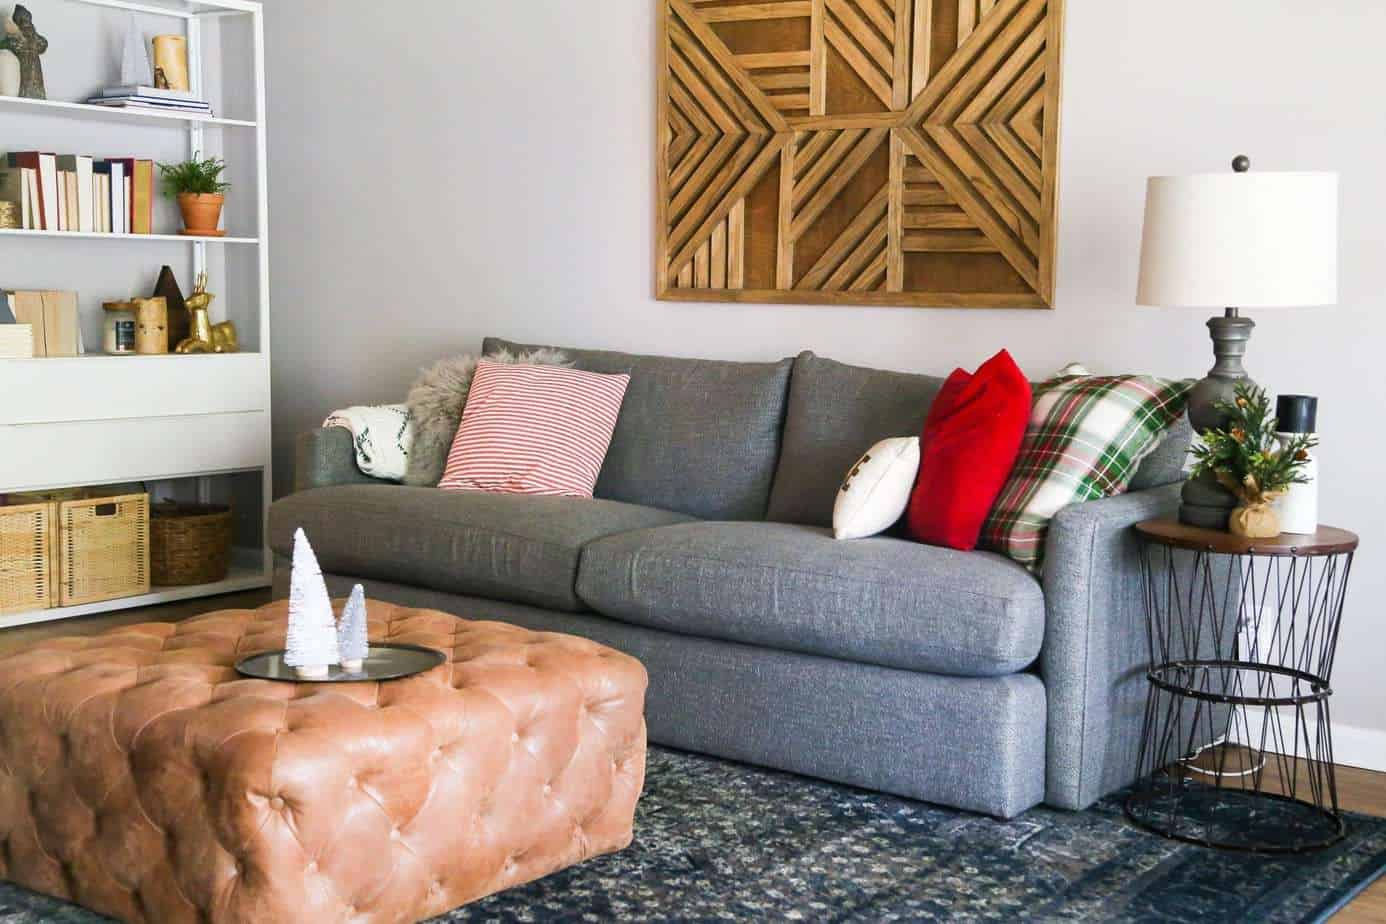 Sofas And Stuff Reviews Our Big Comfy Couch A Crate Barrel Lounge Ii Sofa Review